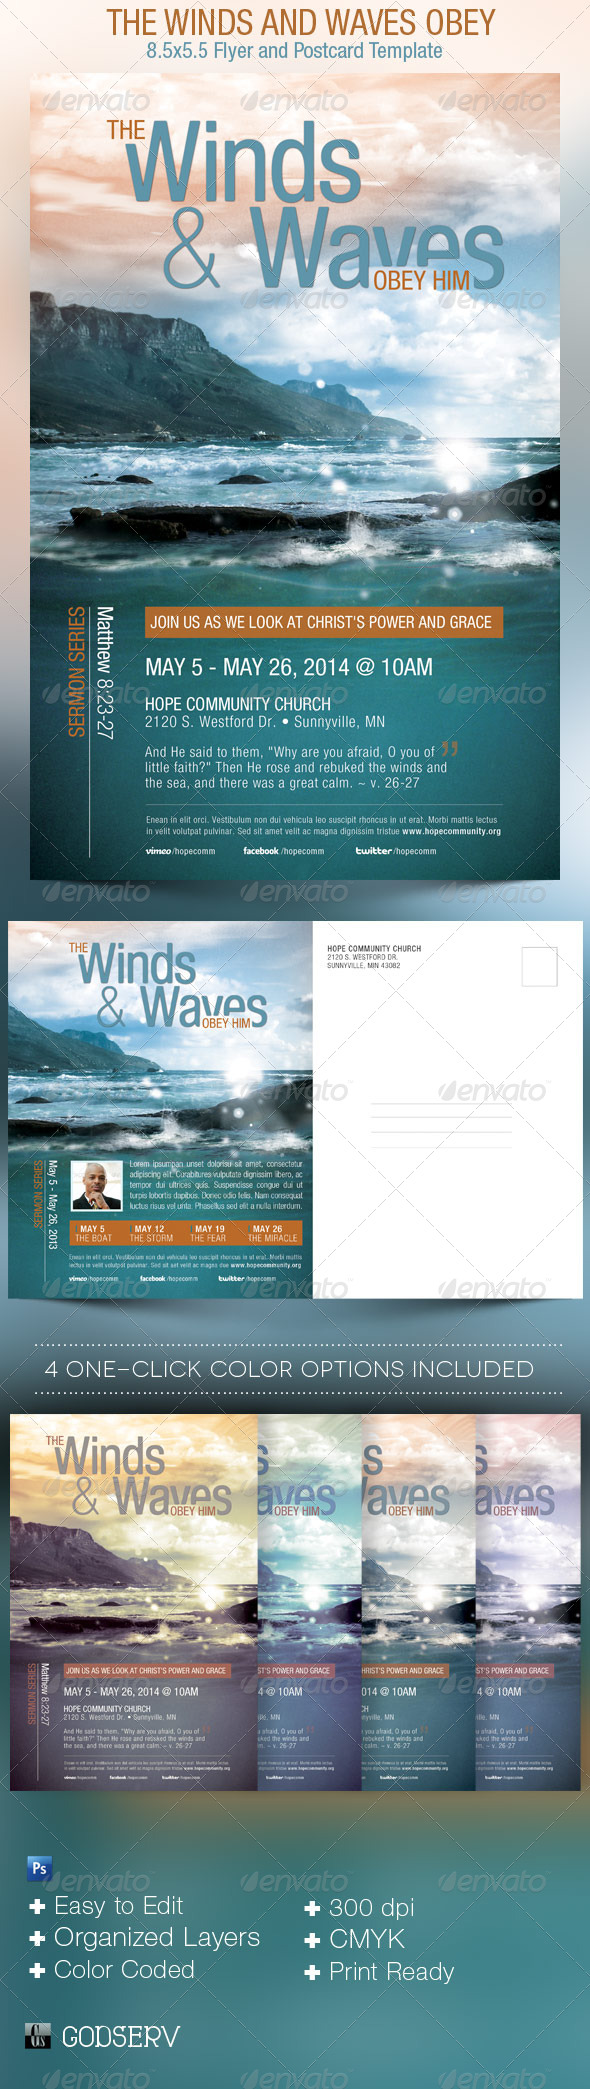 Obey Church Flyer Template - Church Flyers